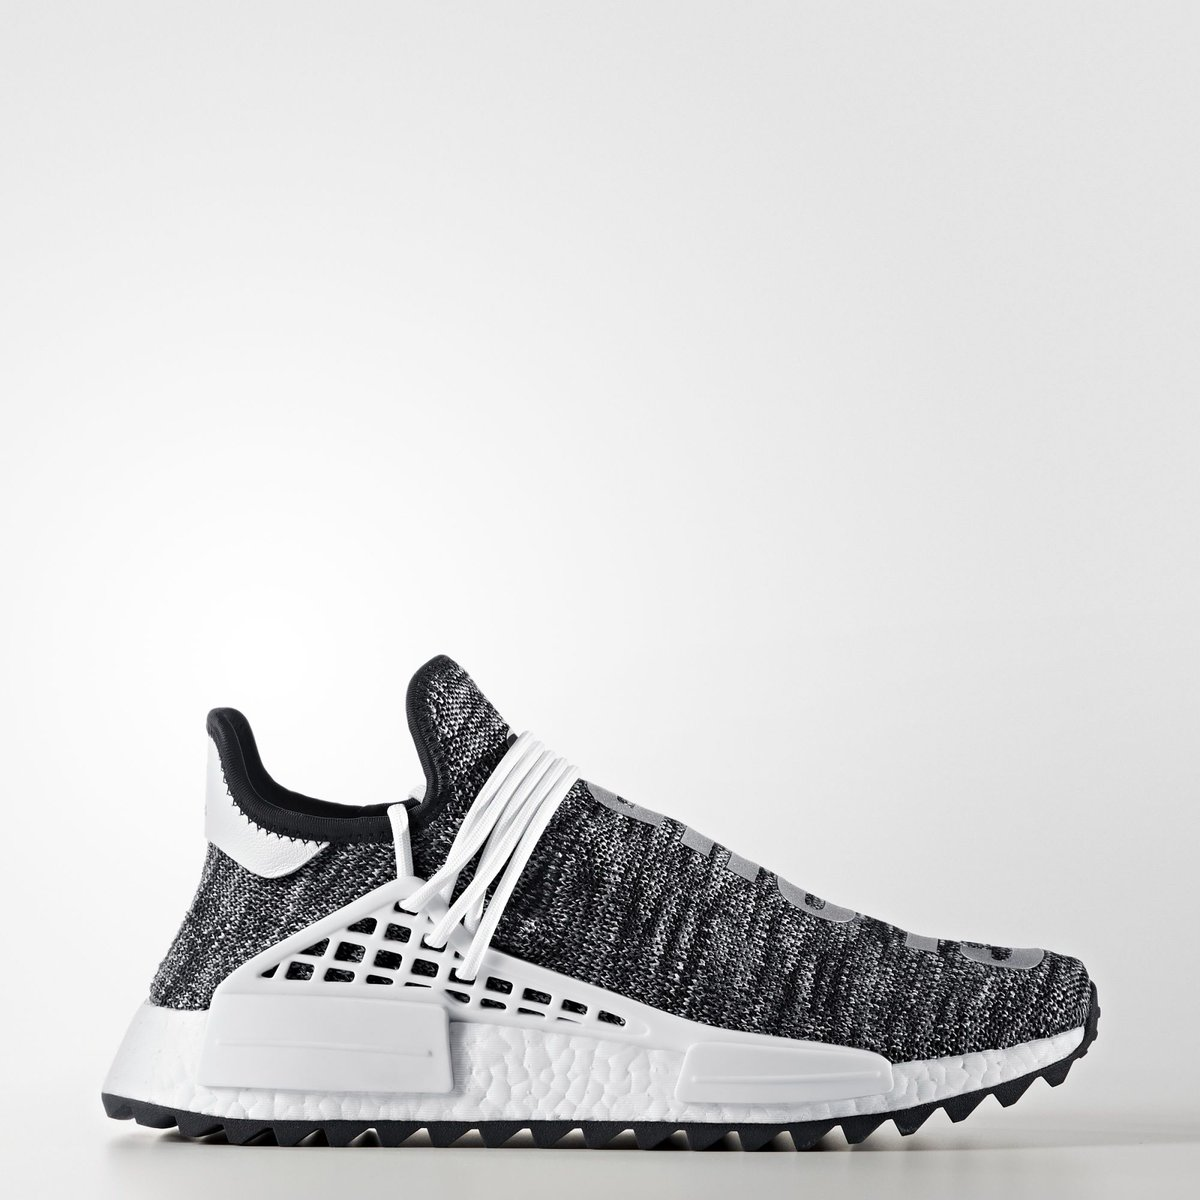 Pharrell Williams Shoes x Adidas NMD Human Race black red Store